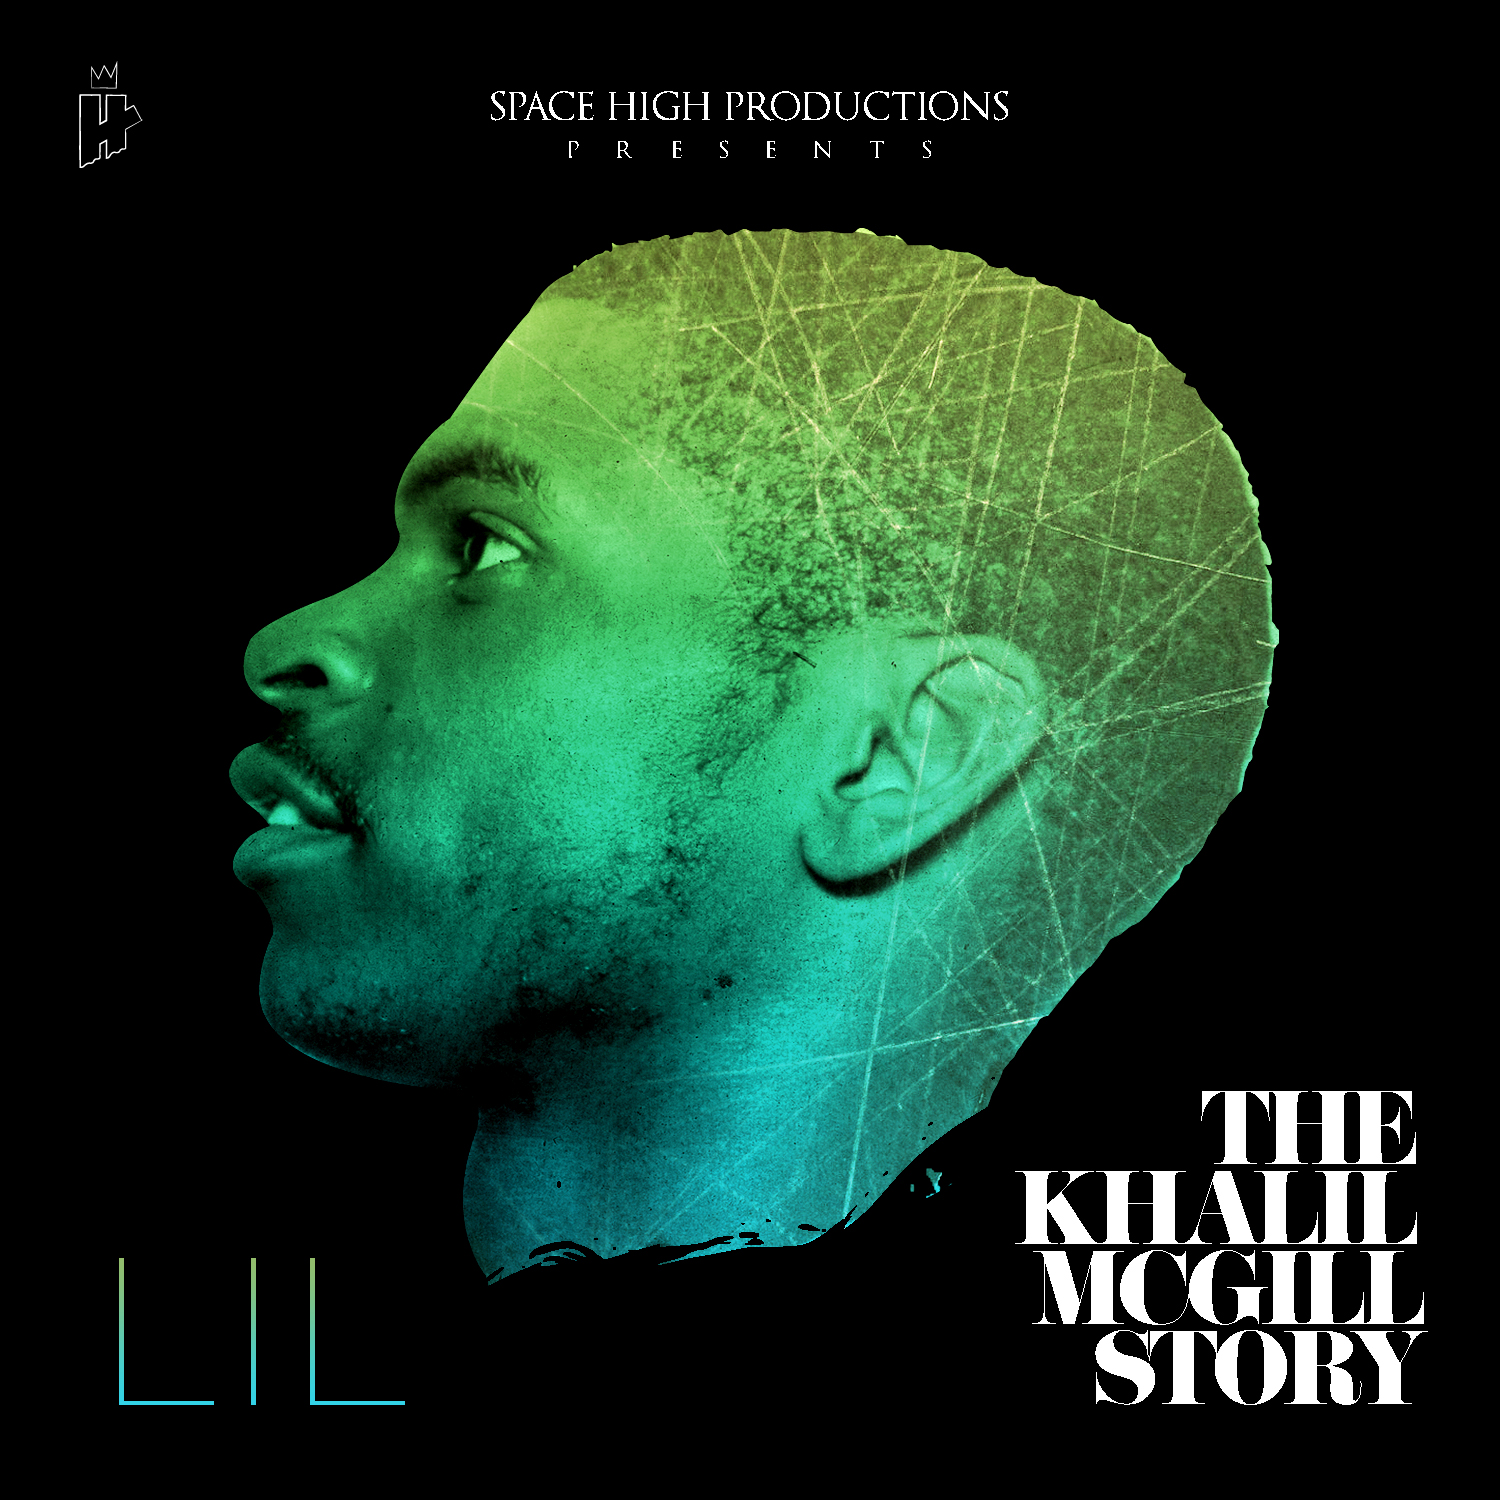 Front Lil (@Spacehigh_lil) - The Khalil McGill Story #TKMS (ALBUM)